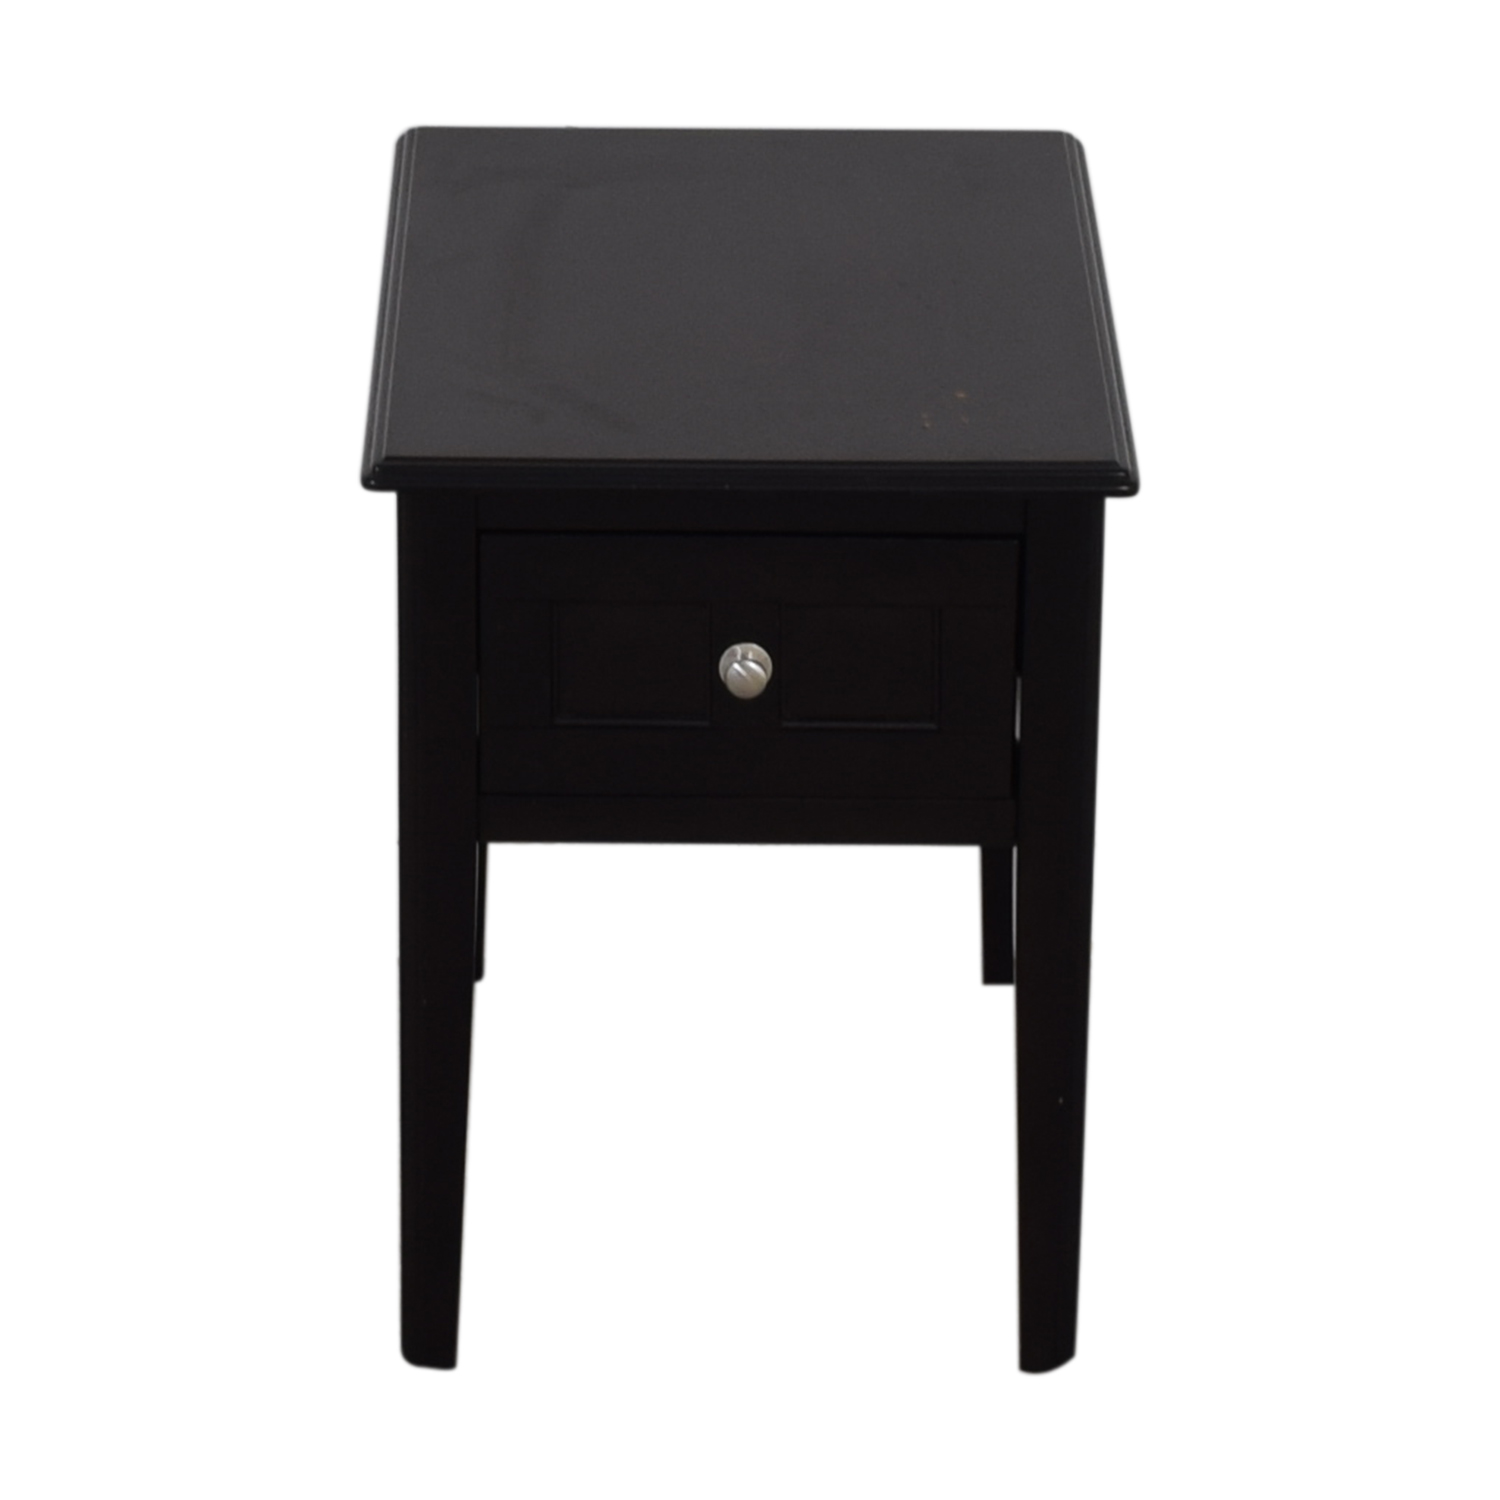 buy Ashley Furniture Ashley Furniture Black Single Drawer End Table online